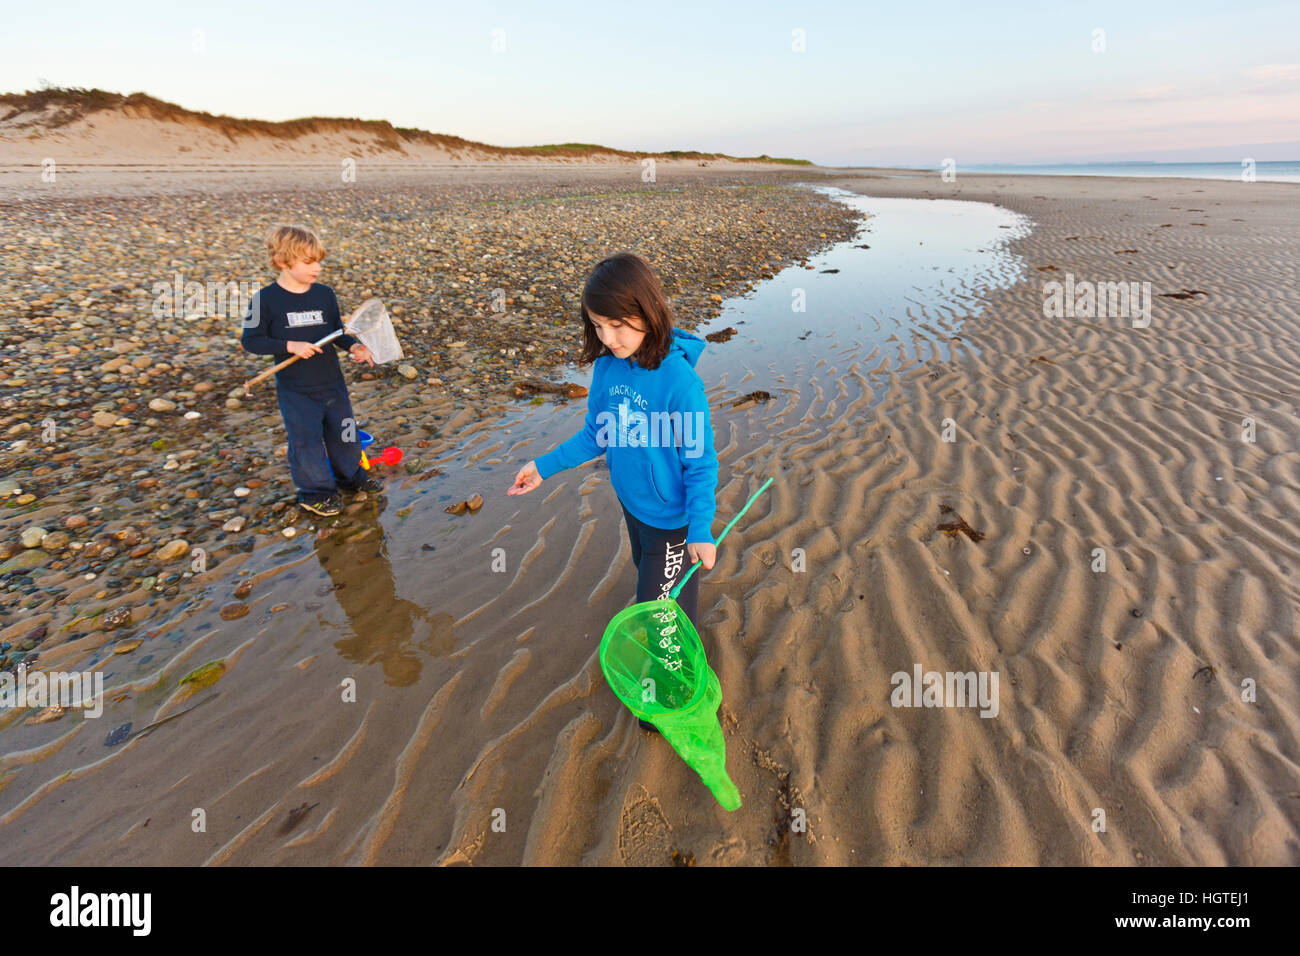 ab580547ce4 Boy And Girl On Beach Collecting Seashells Stock Photos   Boy And ...